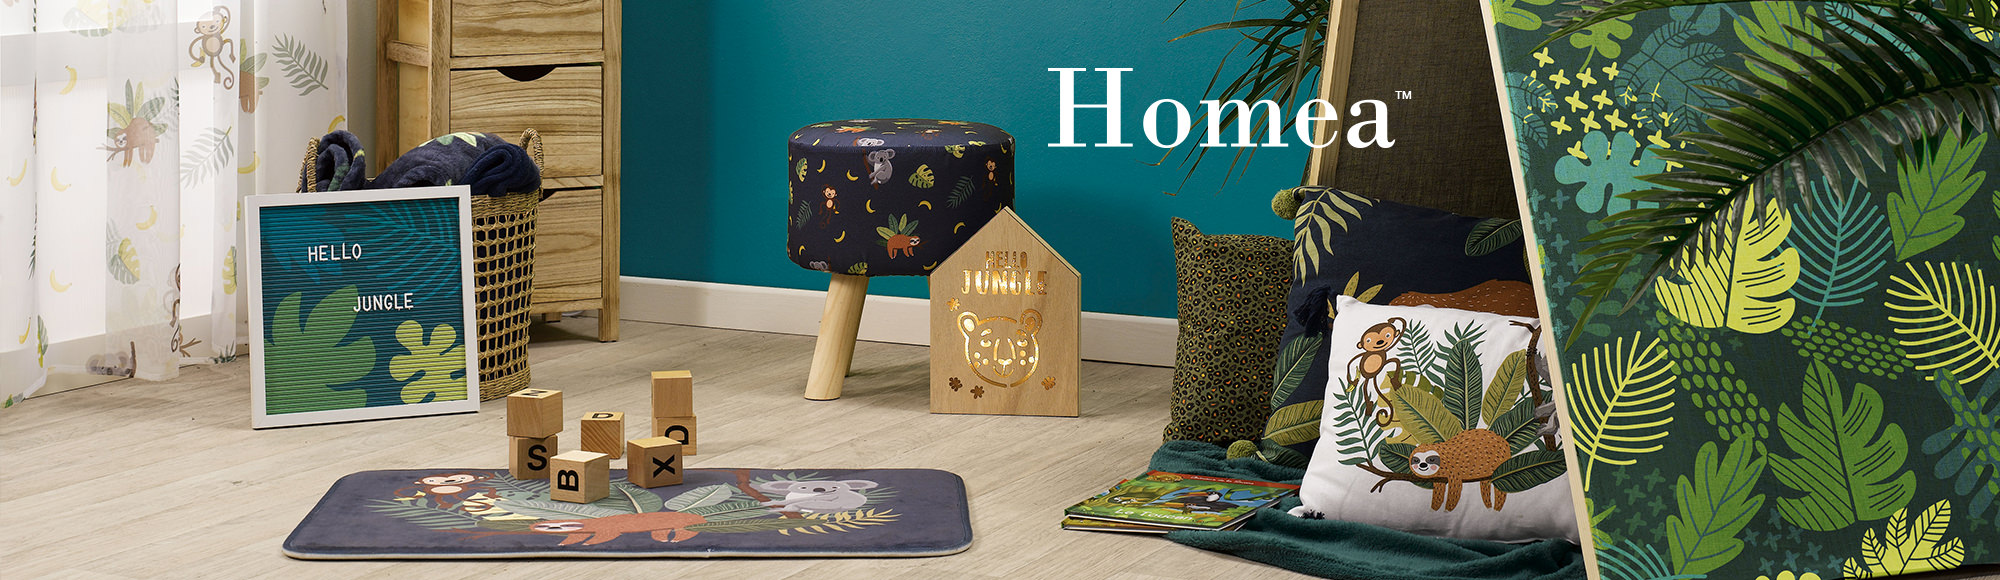 U10 – Homea brand – Kids decoration – Marley theme – mats, cushions, stools, frames, stuffed animals